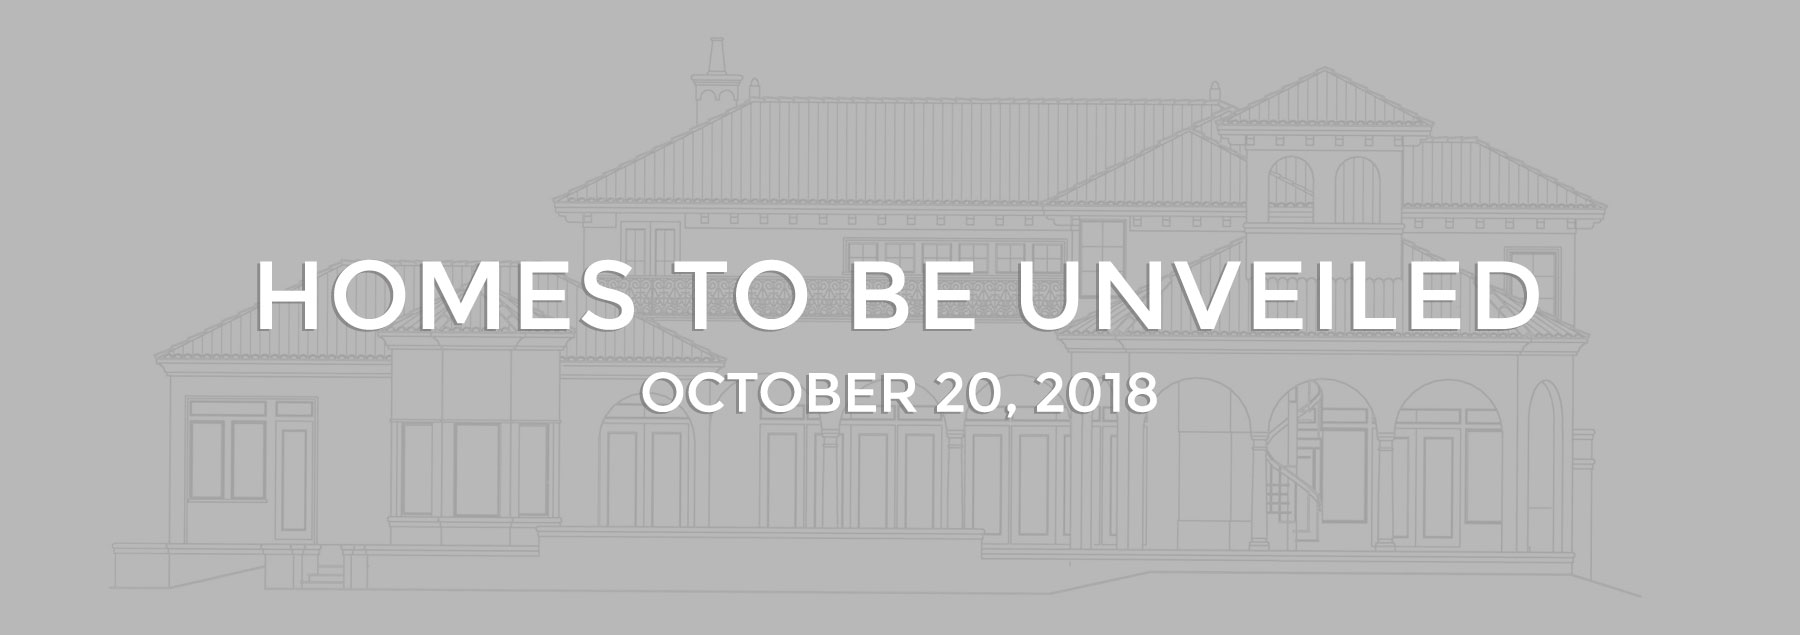 Homes to be Unveiled October 20, 2018